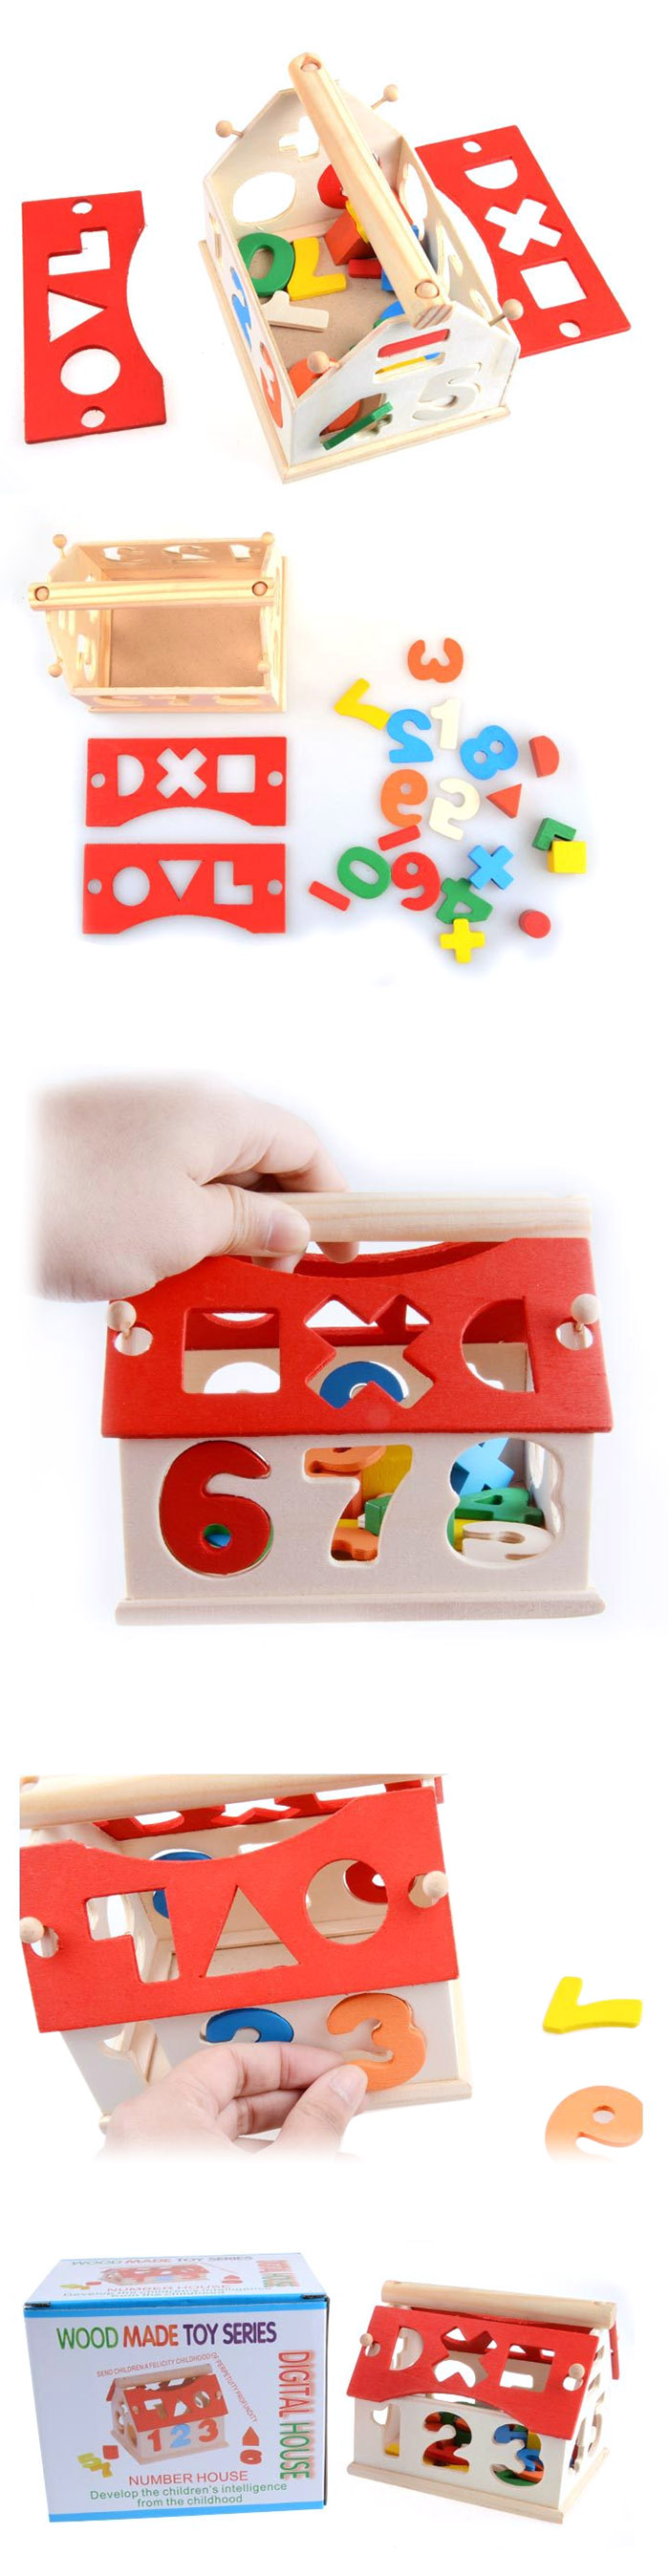 Digital Number Building Block House Educational Product Kid Toy